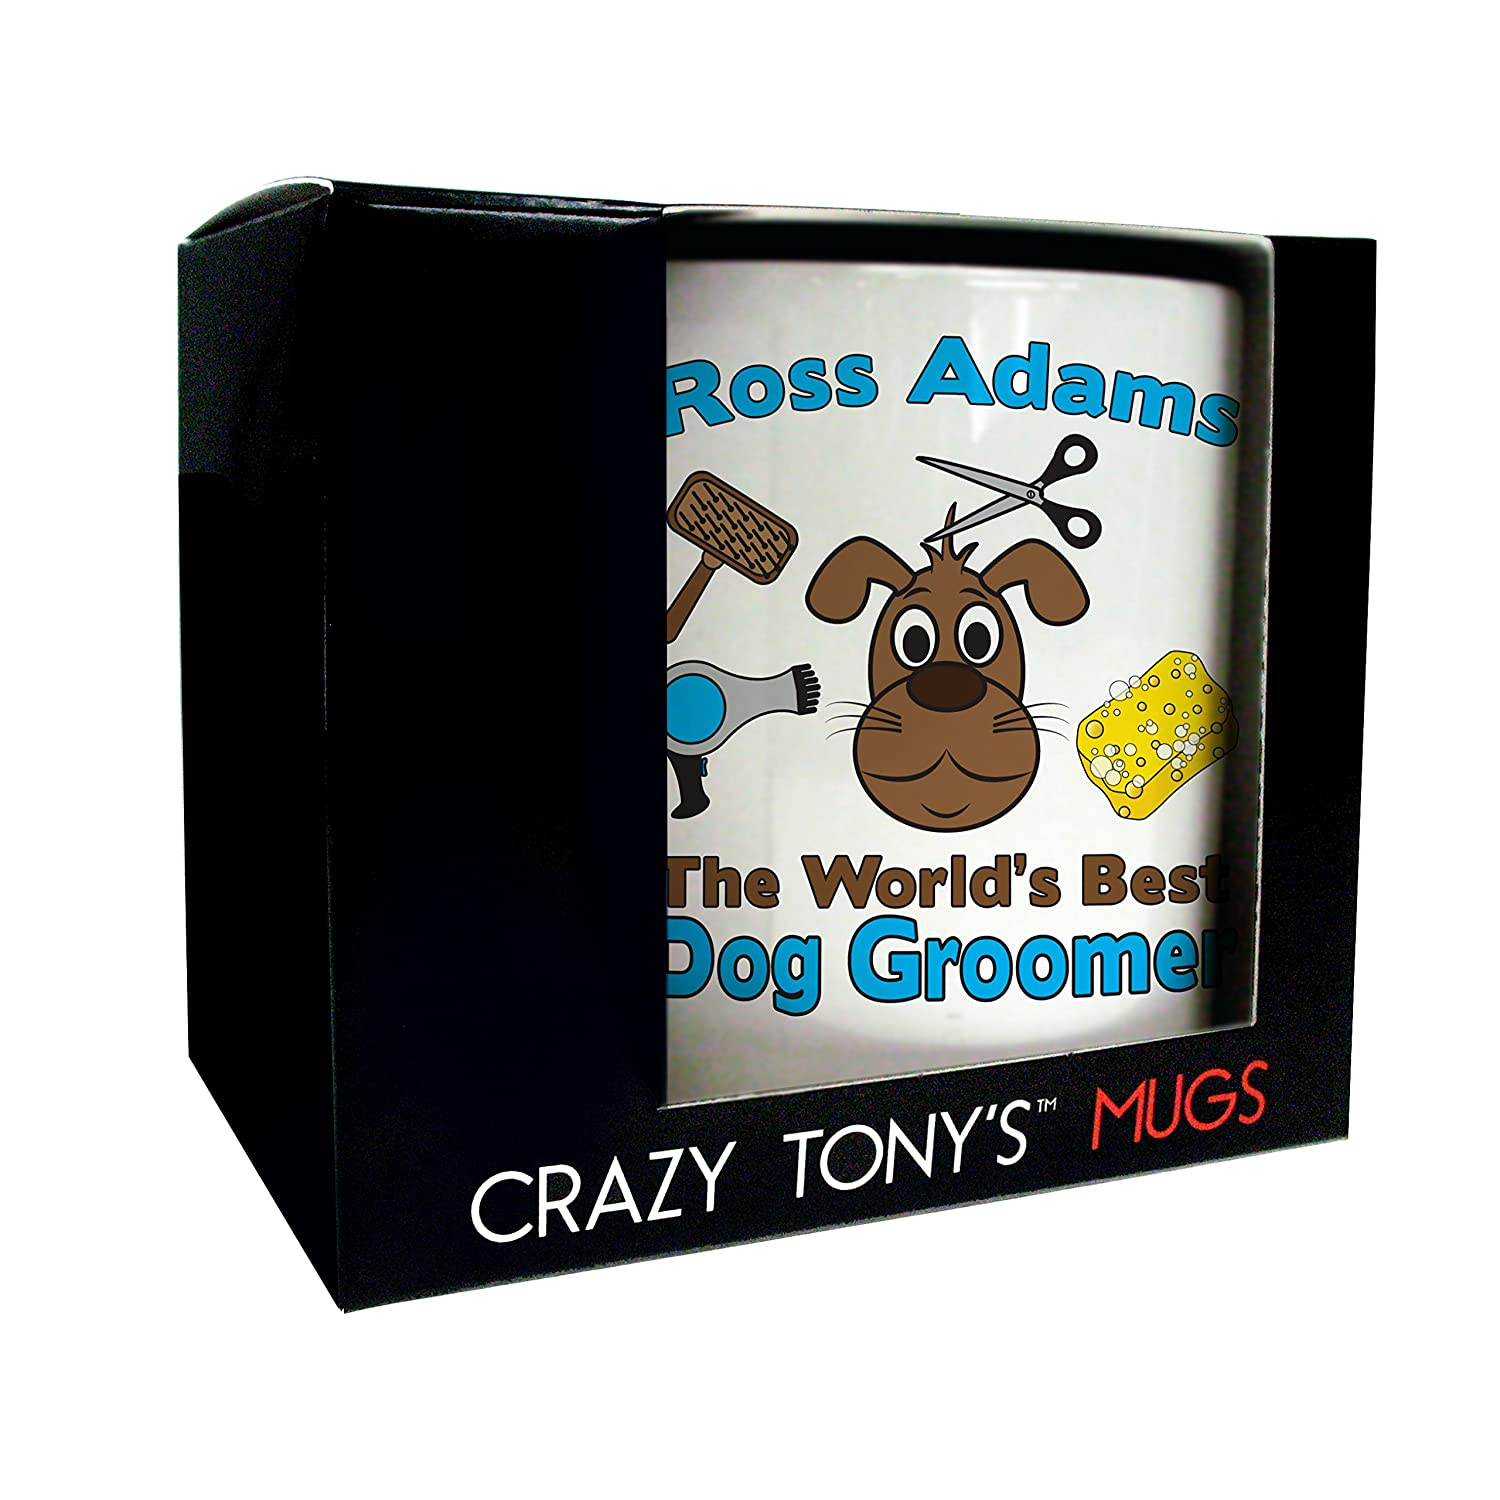 Fun Novelty Dog Groomers Mug Personalised Dog Groomer Gifts Thank You Presents by CRAZY TONY'S: Amazon.ca: Home & Kitchen